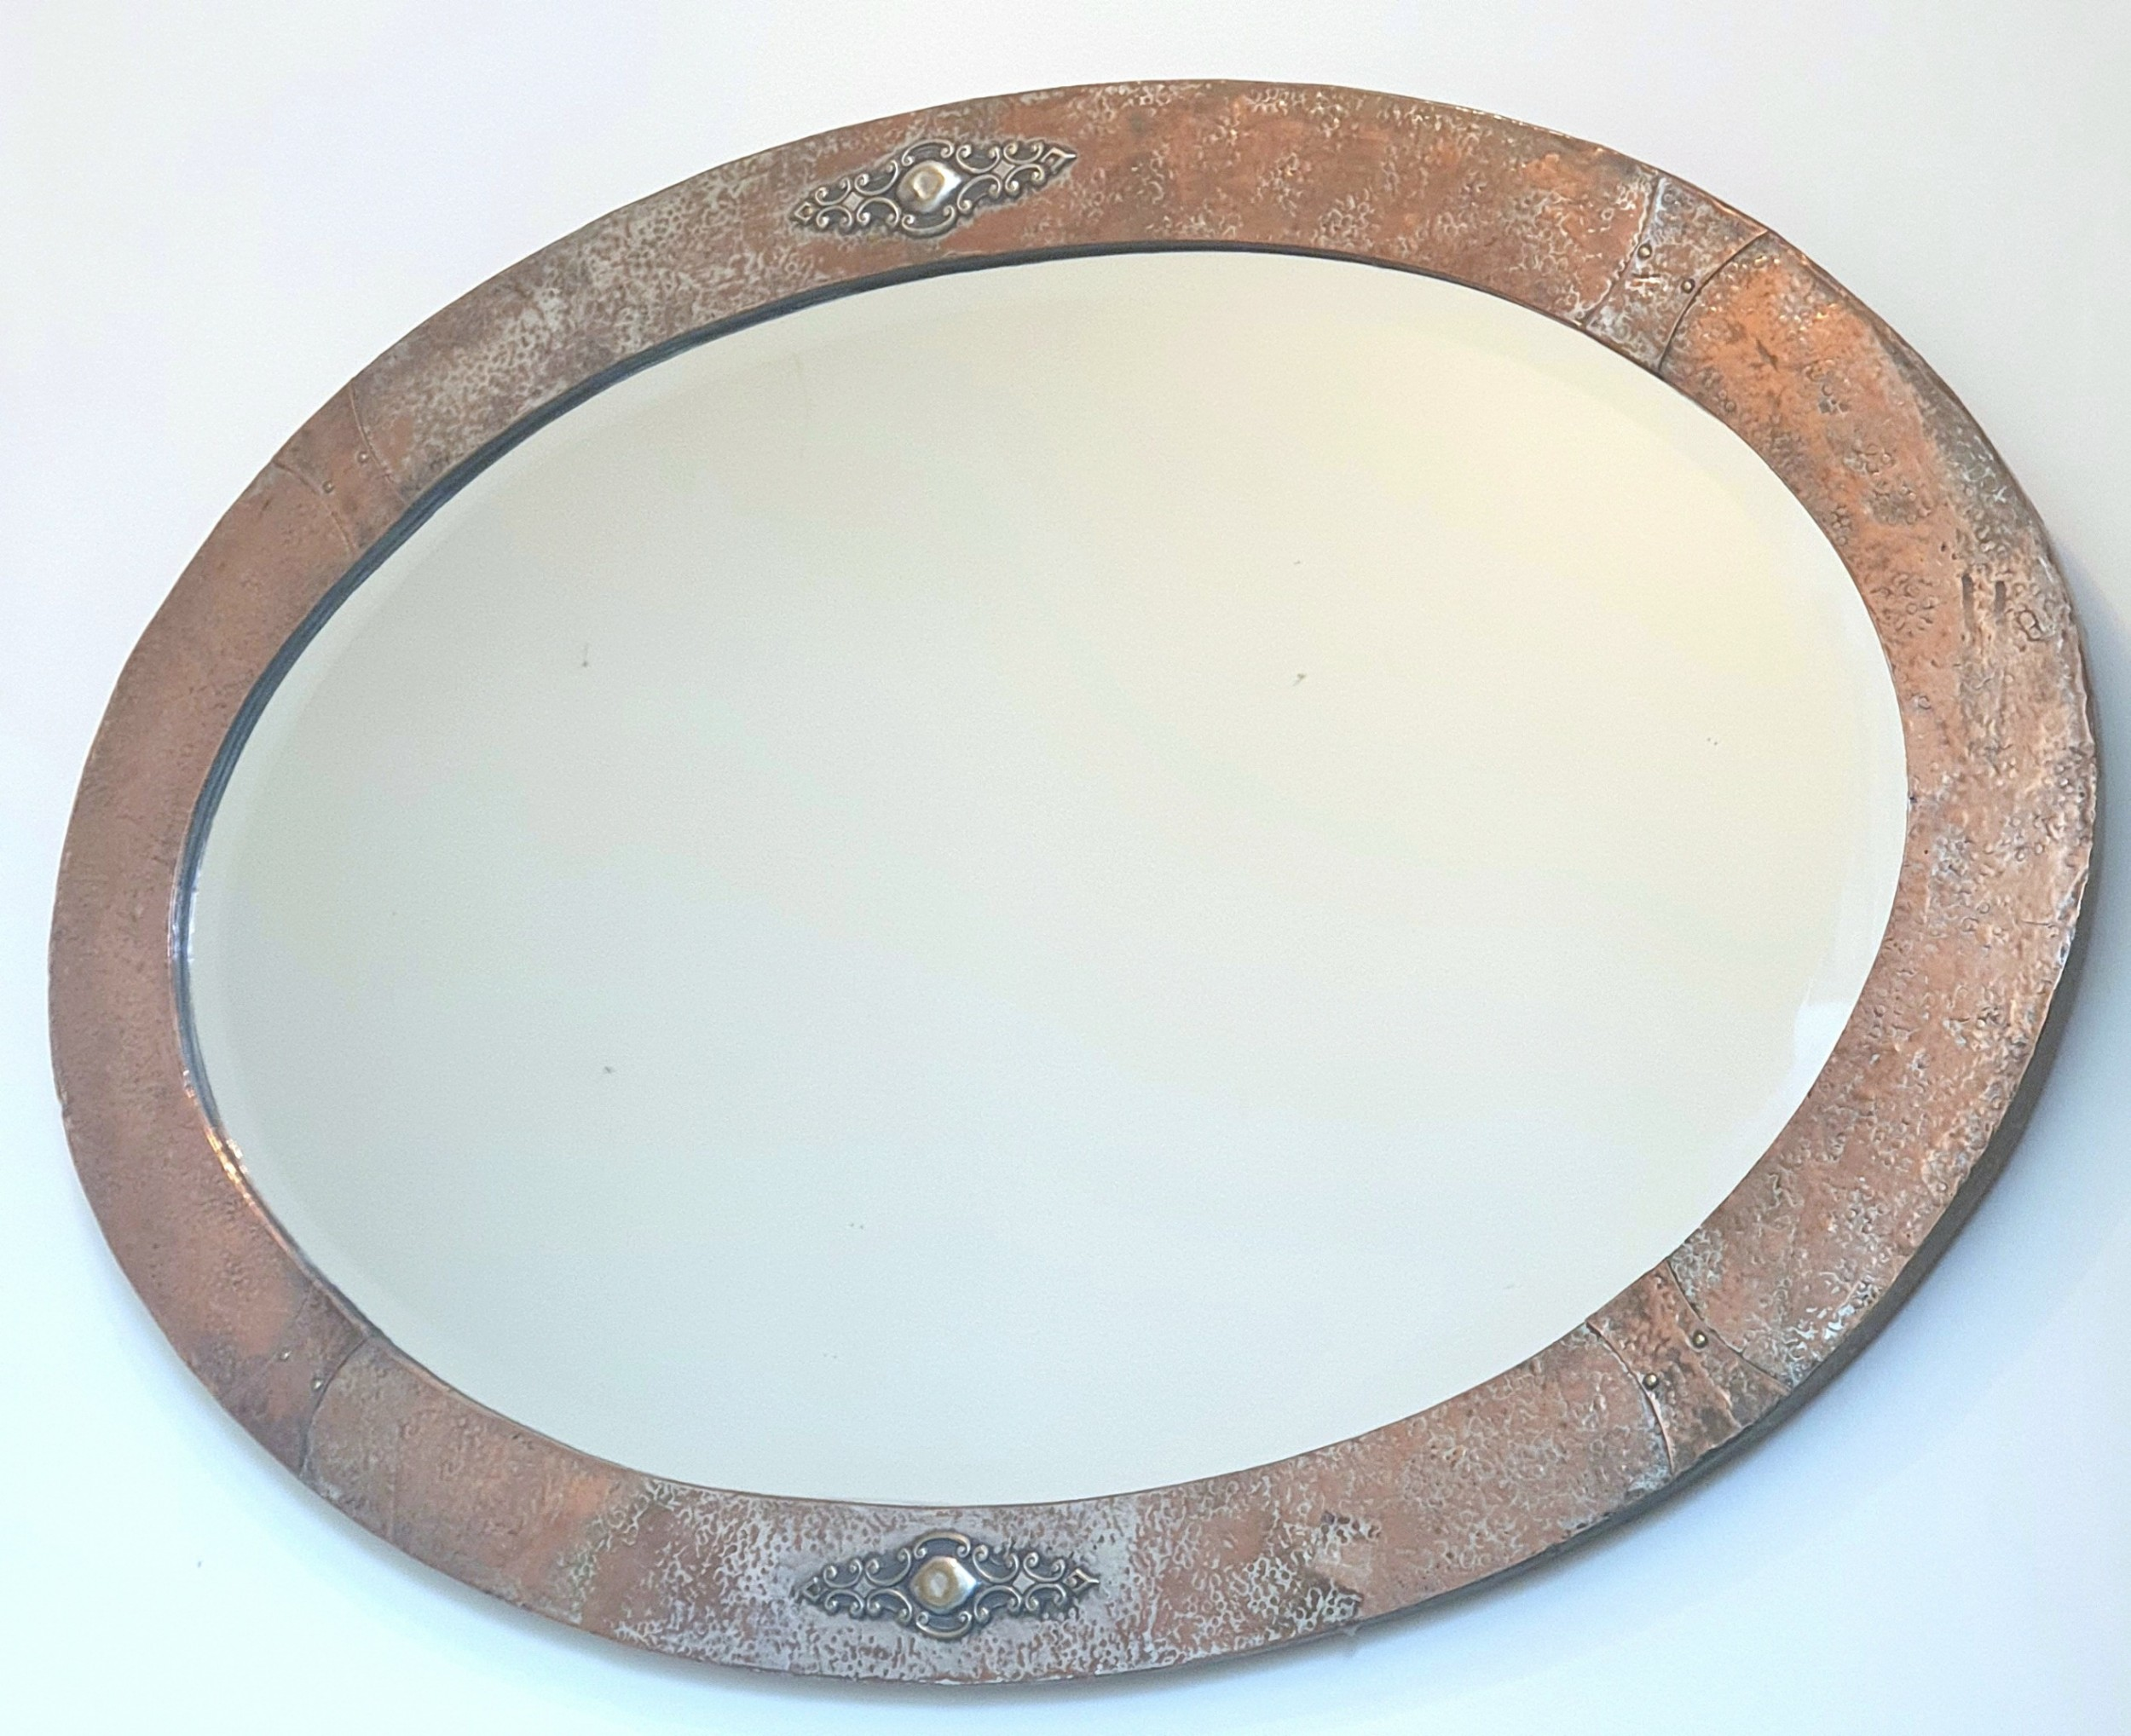 arts crafts silver over bronze copper studded oval wall mirror with original wooden backing